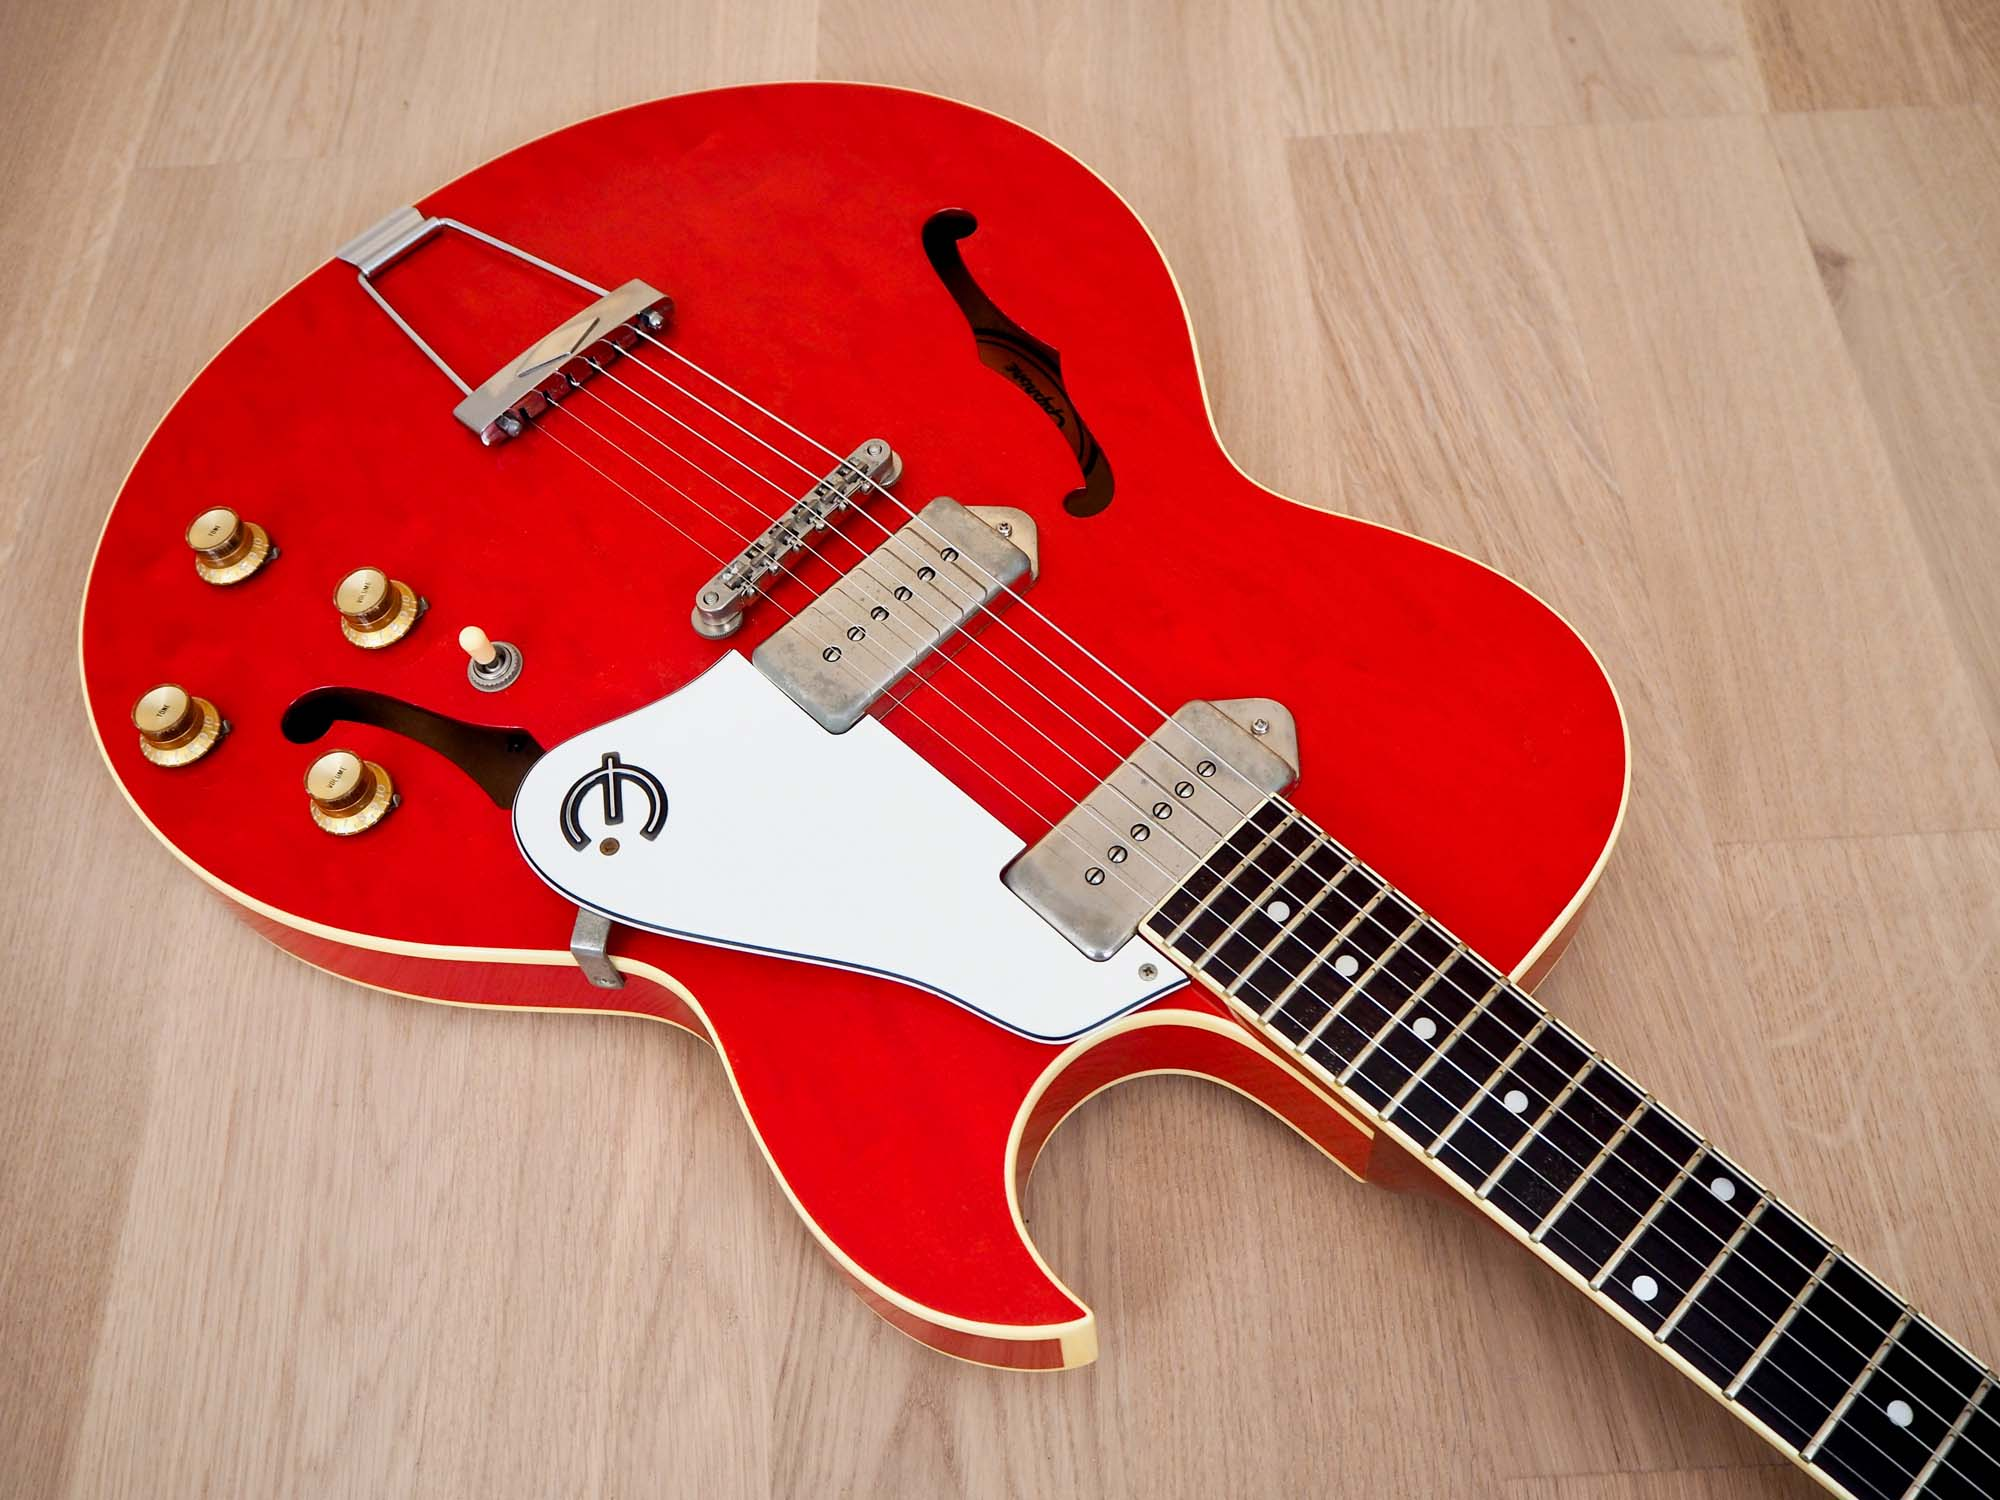 1991 Epiphone Sorrento ES-930J Hollowbody Electric Guitar Cherry w/ Case, Japan Terada